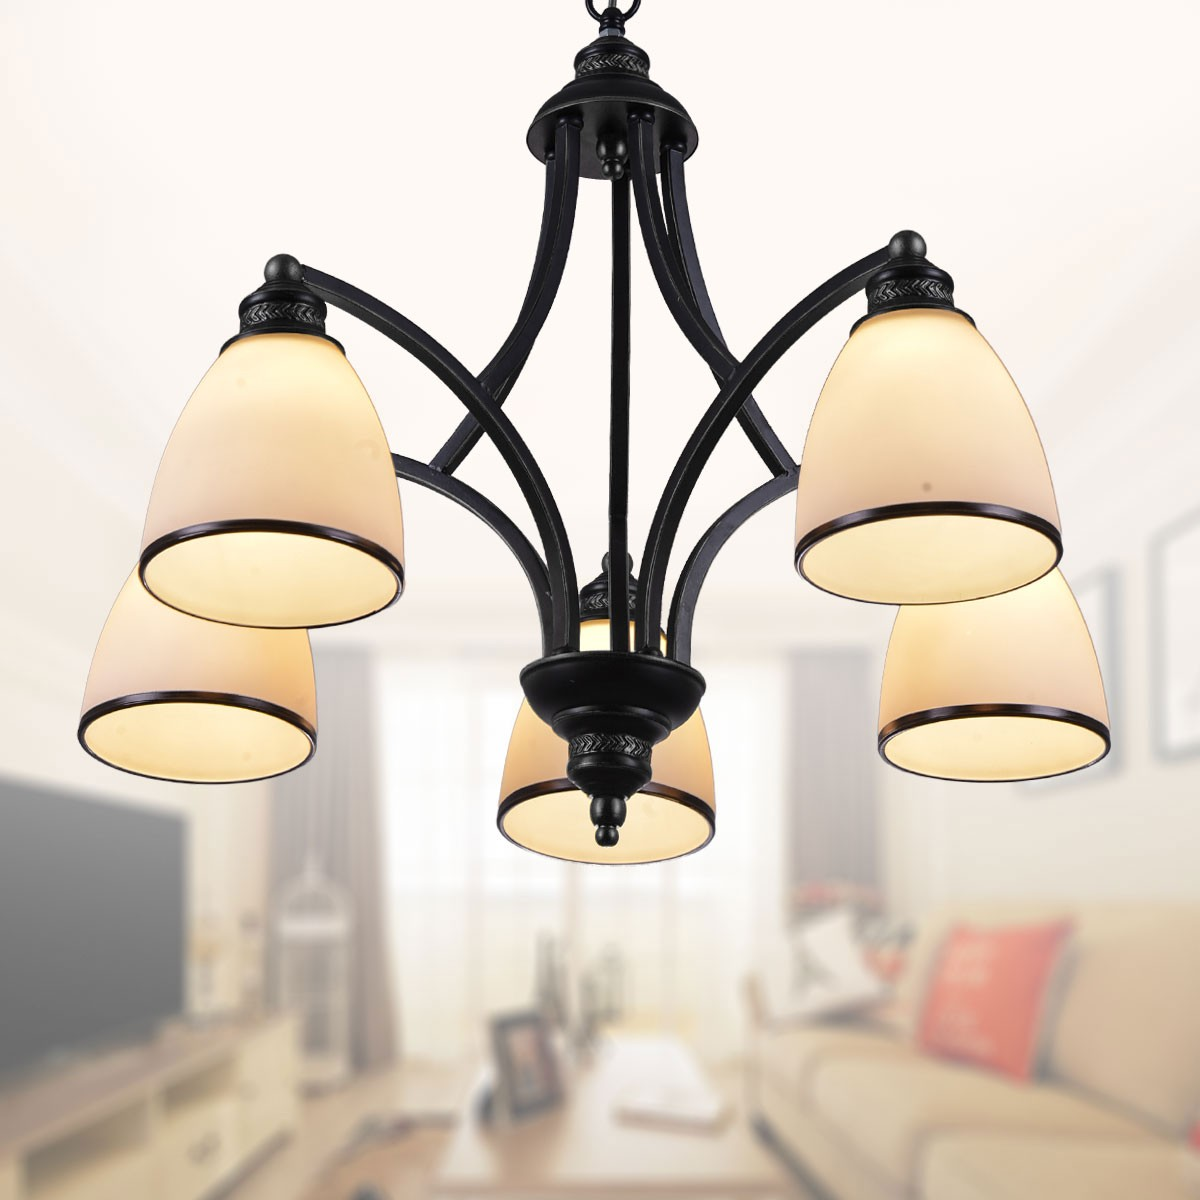 5-Light Black Wrought Iron Chandelier with Glass Shades (DK-5308-5X)